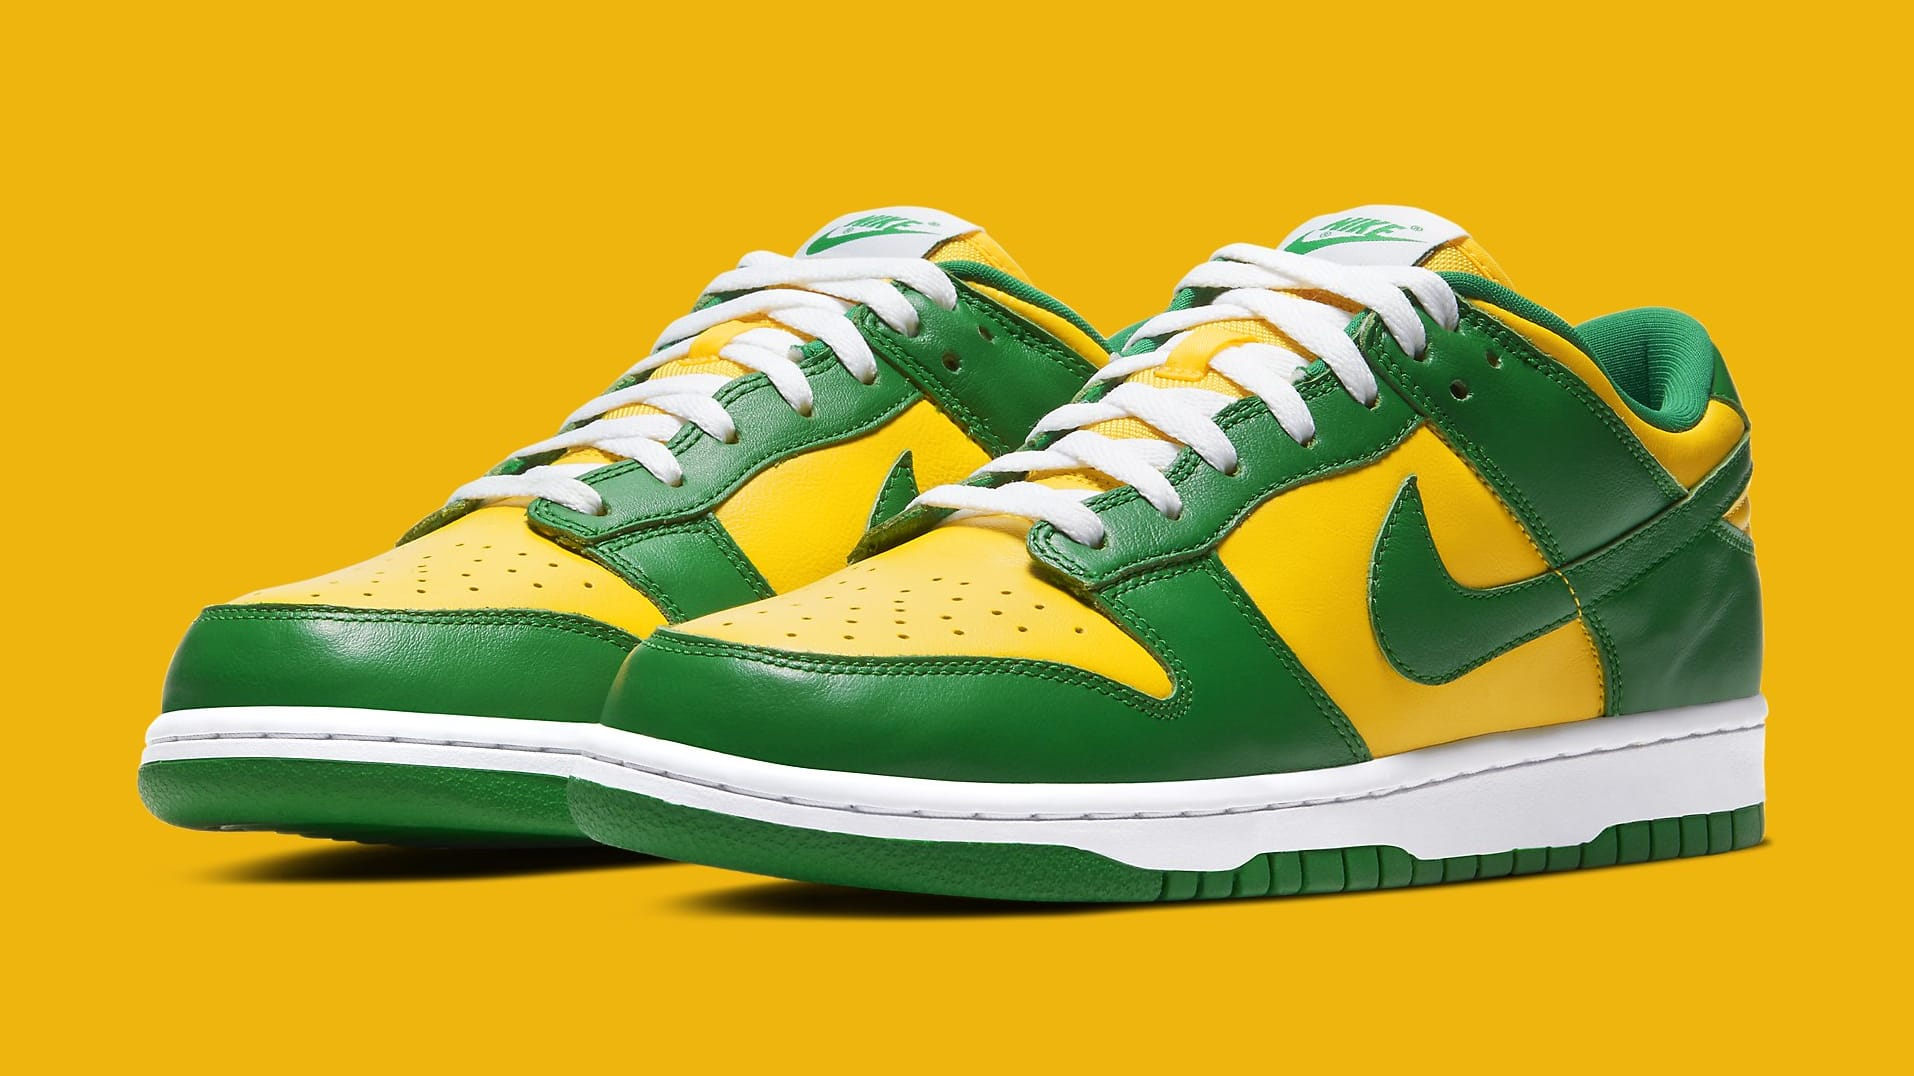 Nike Dunk Low 'Brazil' 2020 CU1727-700 Pair